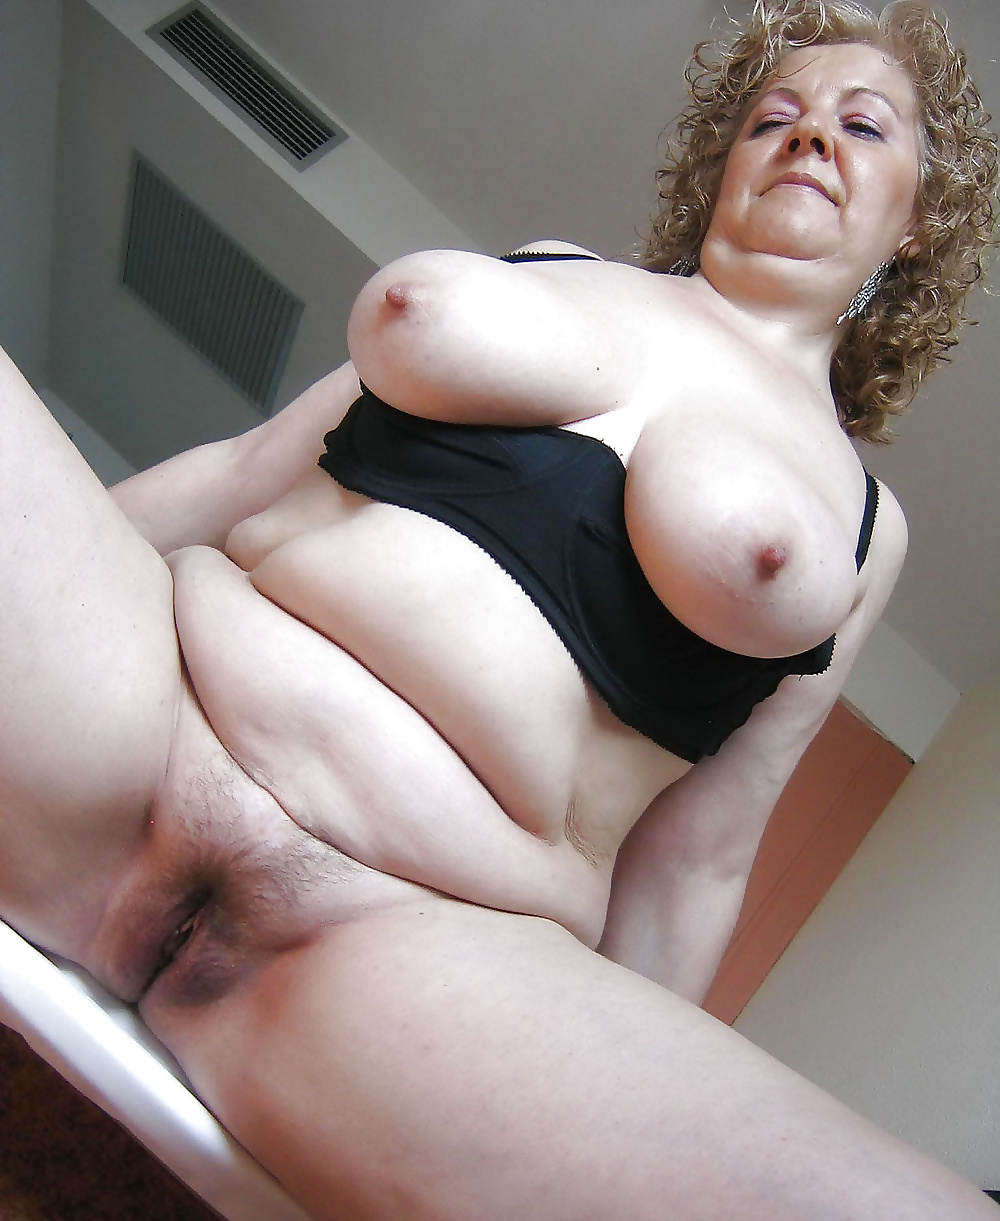 Ass fucking mature hairy pussy